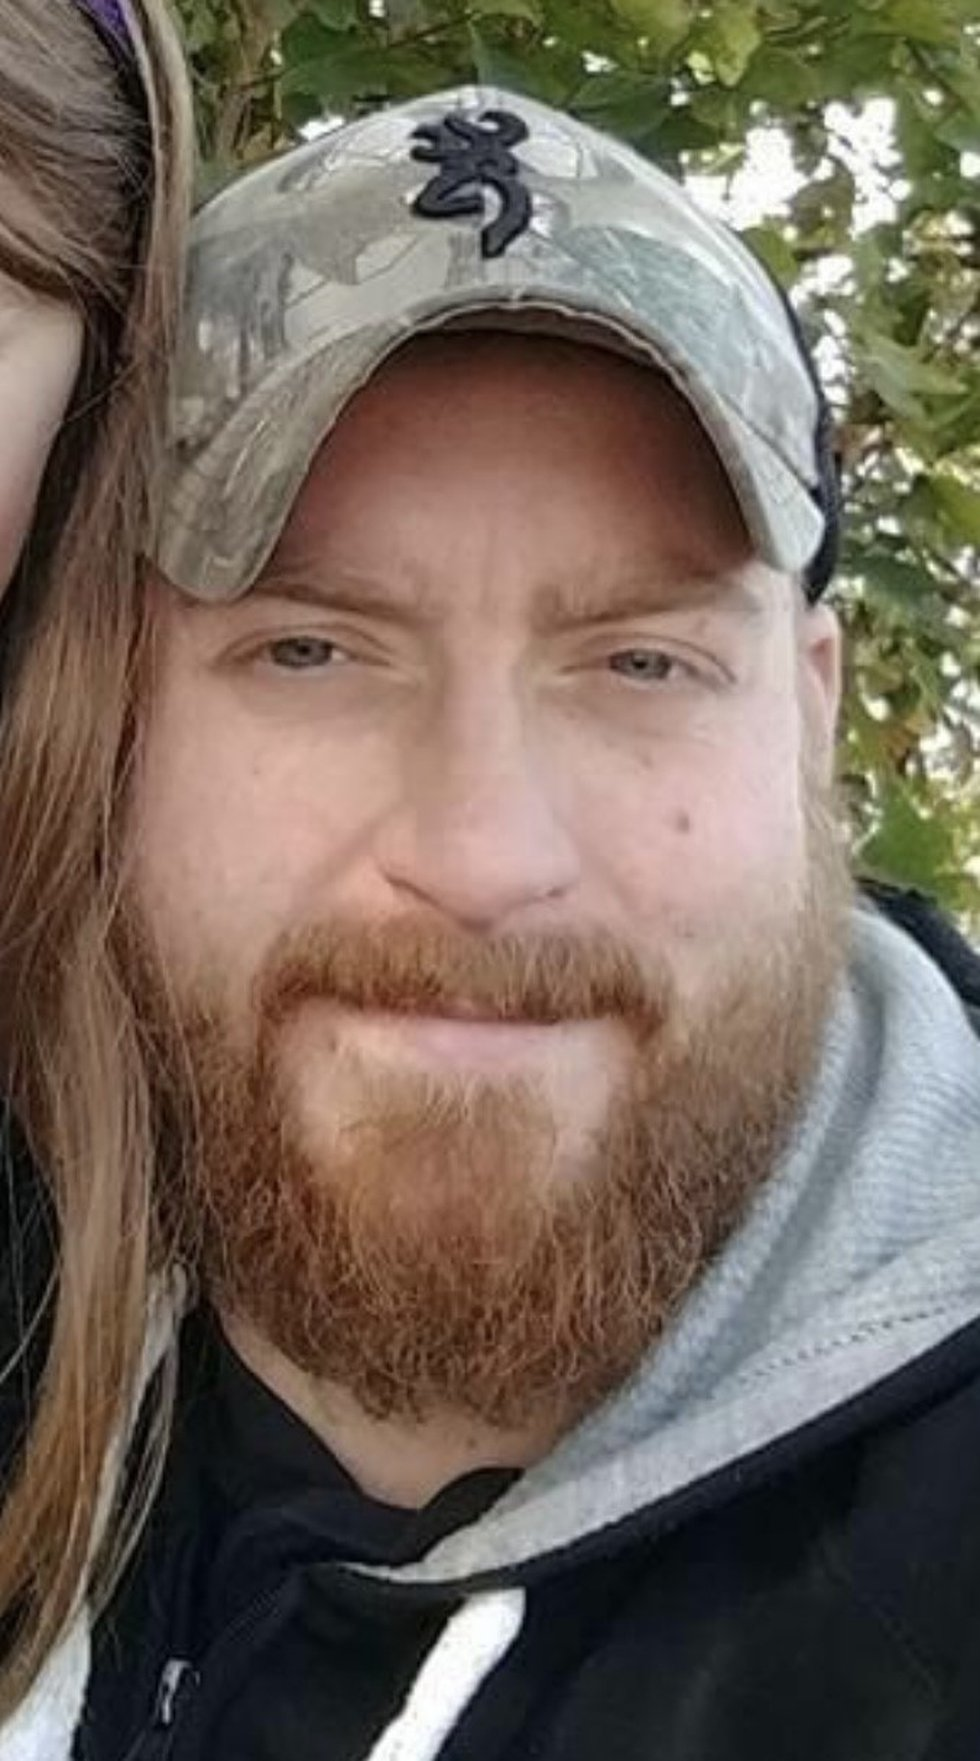 Police say Jonathan Hankins, a 37-year-old Dinwiddie resident, died of an apparent gunshot wound.